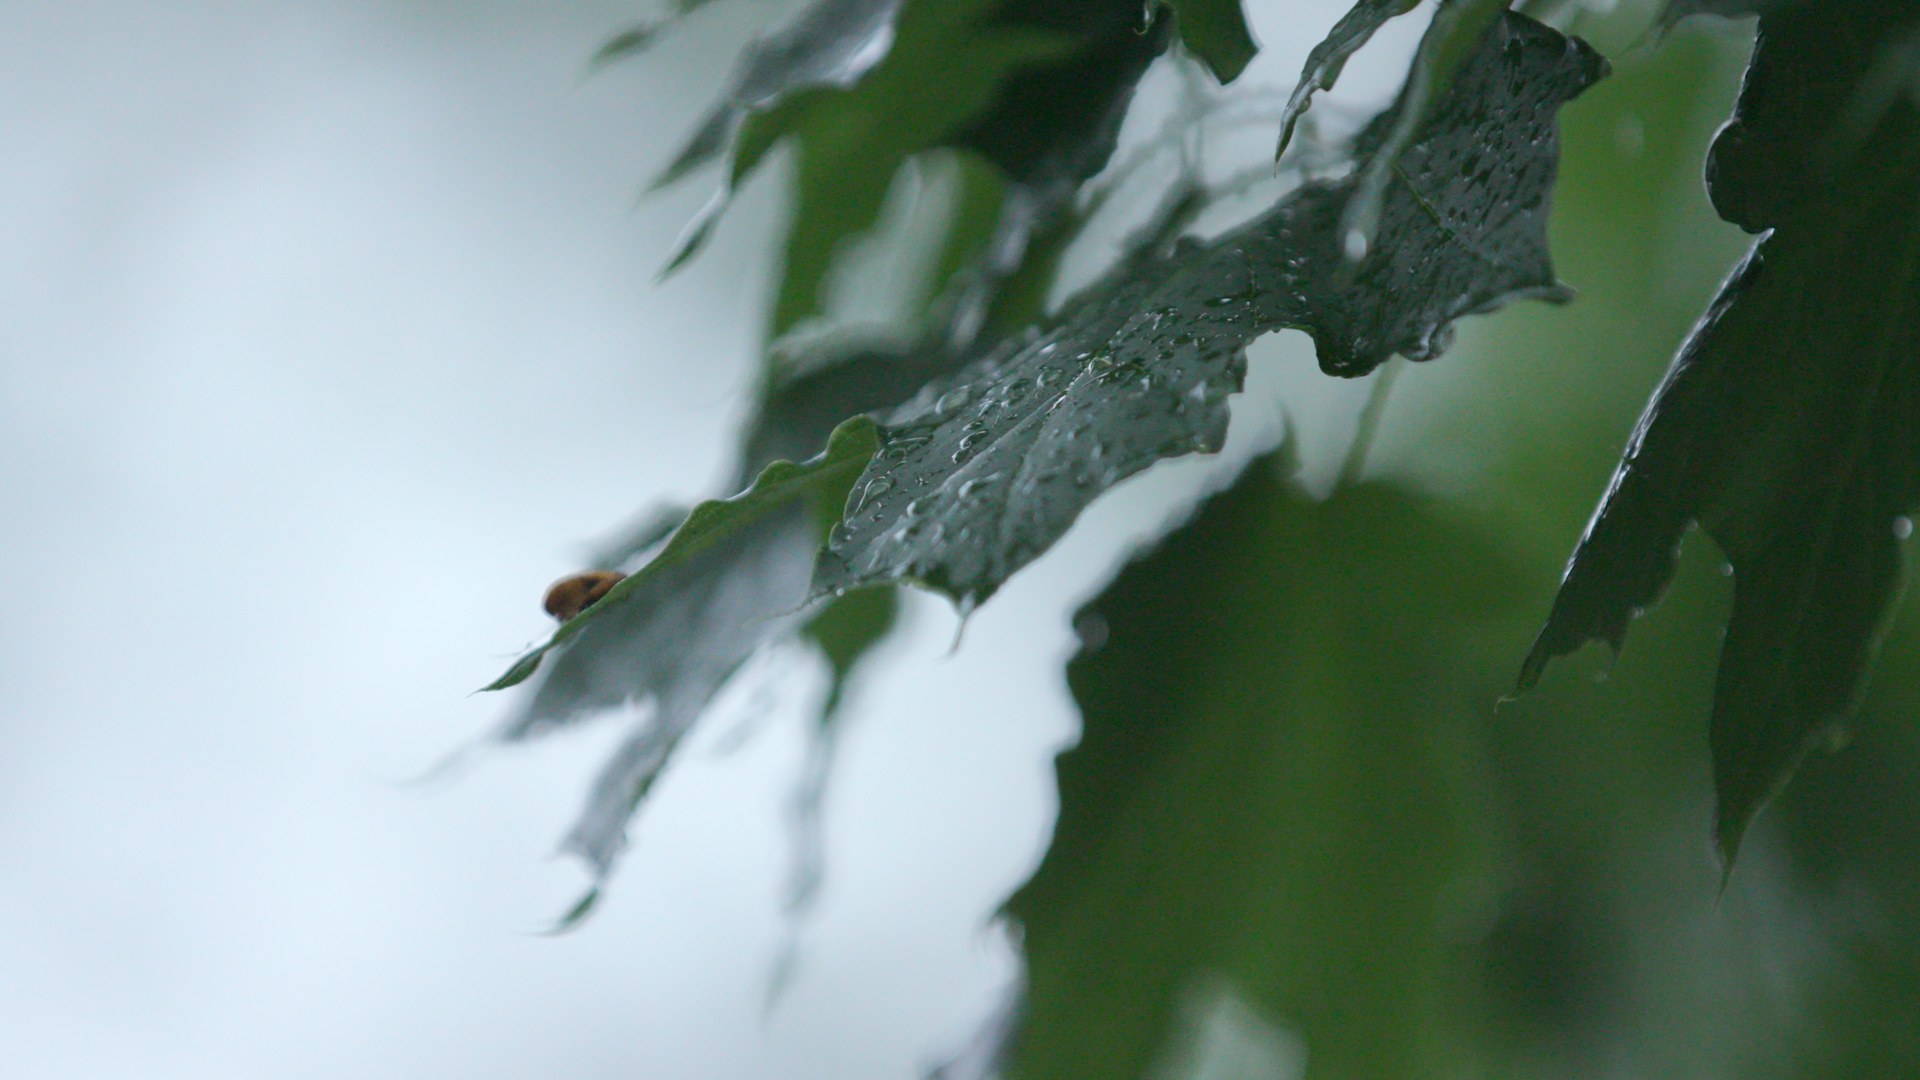 On this picture you can see a bug resting on a leaf during rain in Indianapolis.